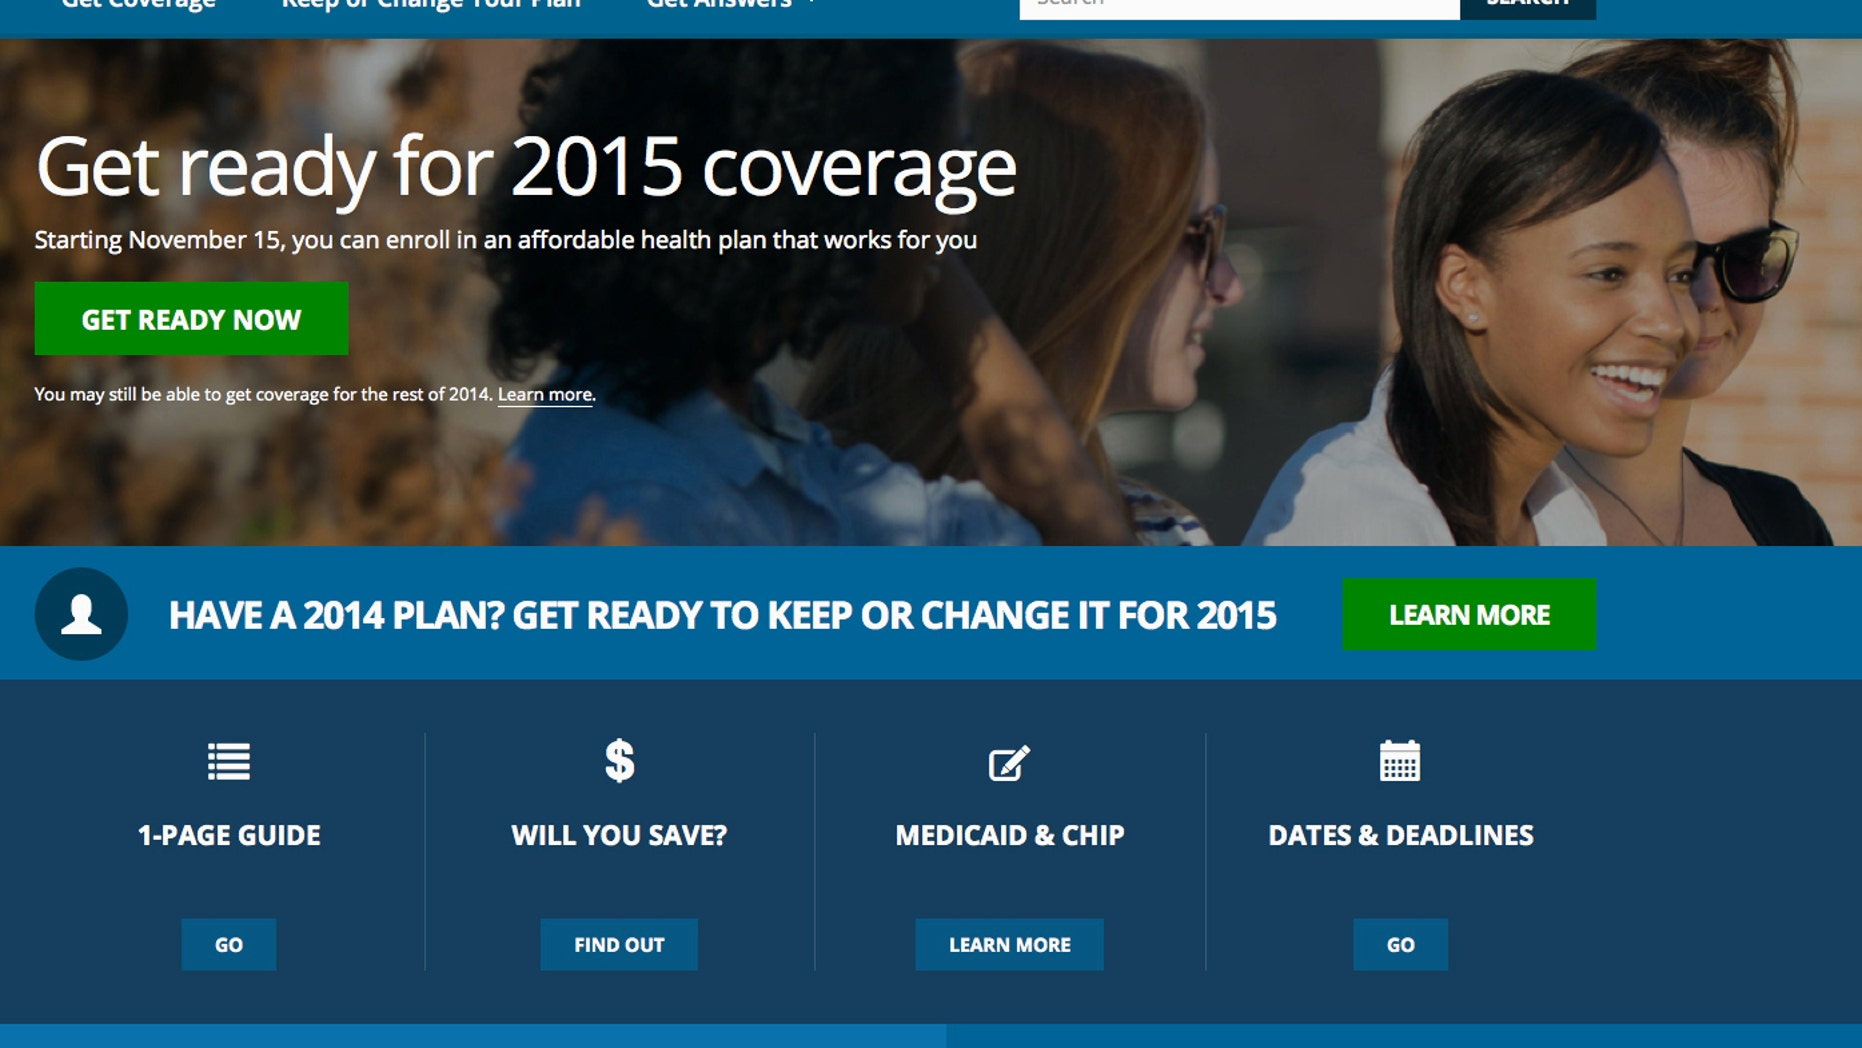 Oct. 15, 2014: Screen shot of the home page of HealthCare.gov, a federal government website managed by the U.S. Centers for Medicare & Medicaid Service.